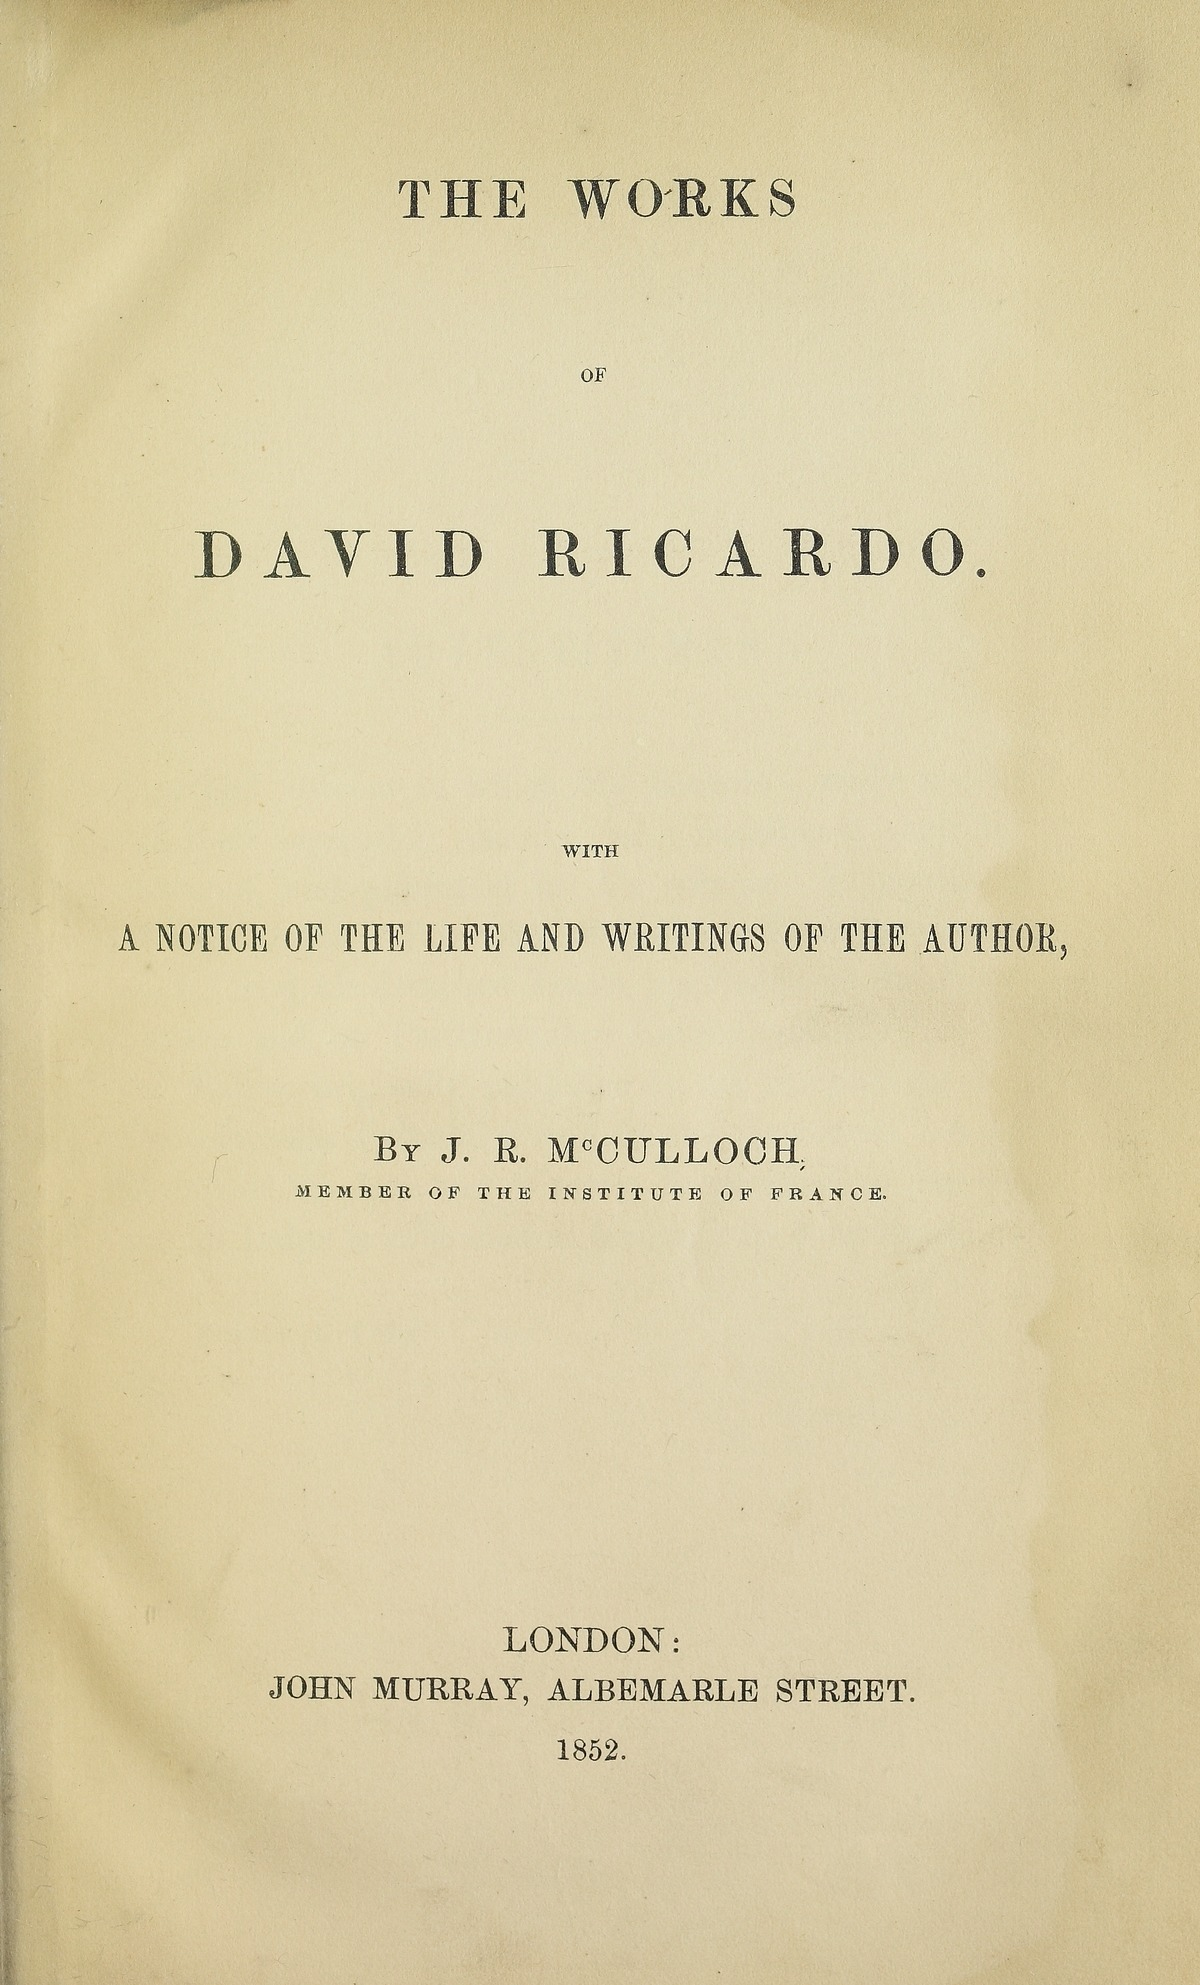 david ricardo law diminishing returns Transcript of economics: david ricardo david ricardo 1772 - 1823 born april 19, 1772 london (1815) speech became the law of diminishing returns 1817.